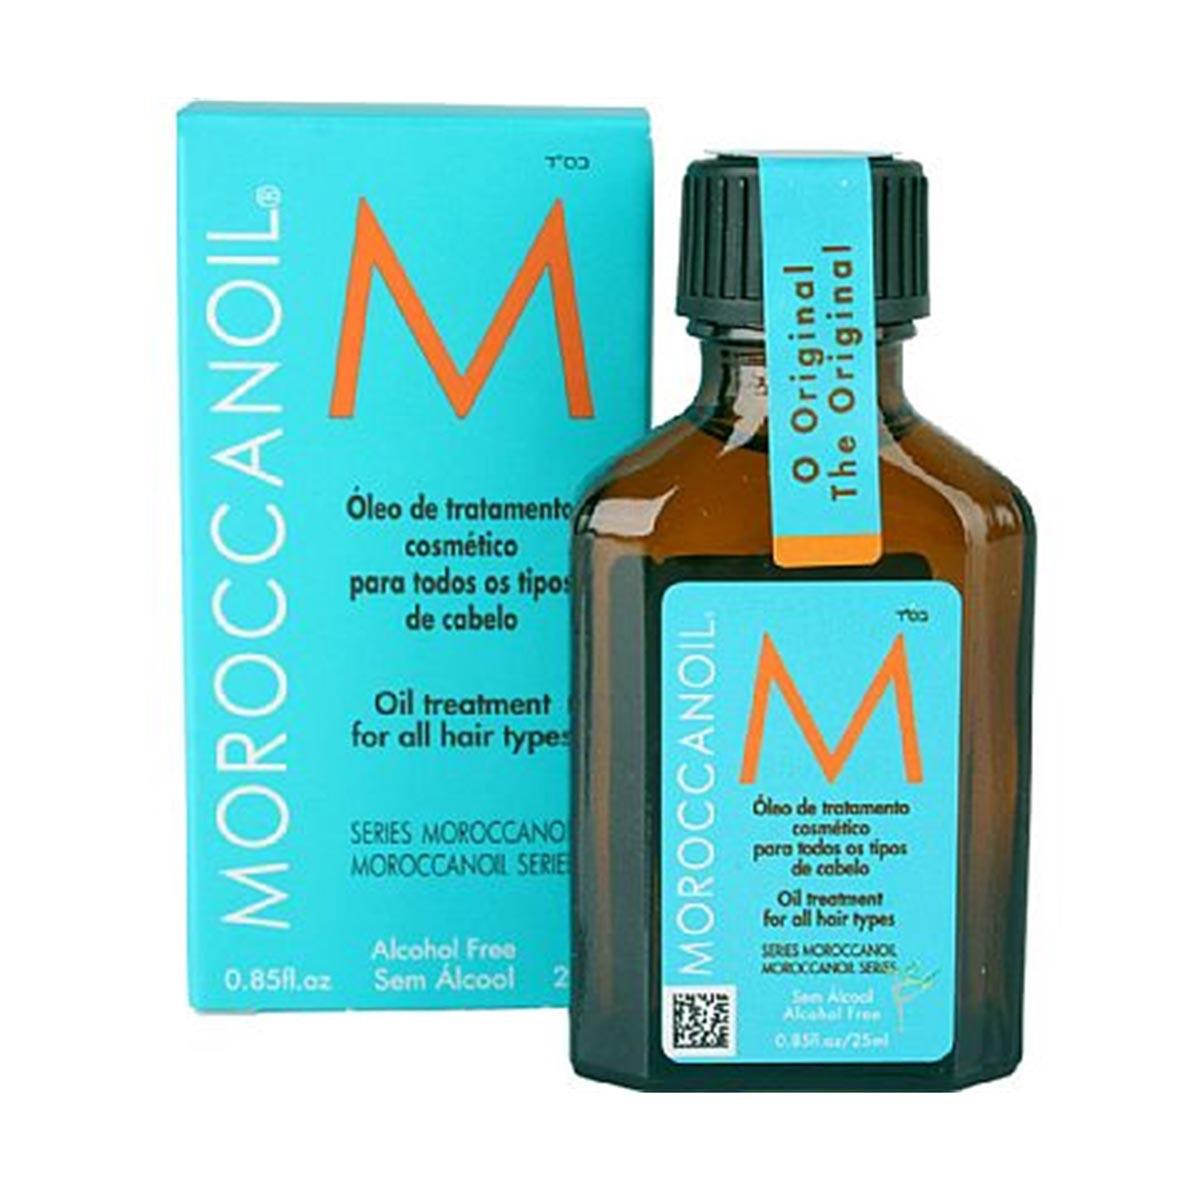 Moroccanoil fragrances Oil Treatment Every Type Of Hair Without Alcohol 25ml